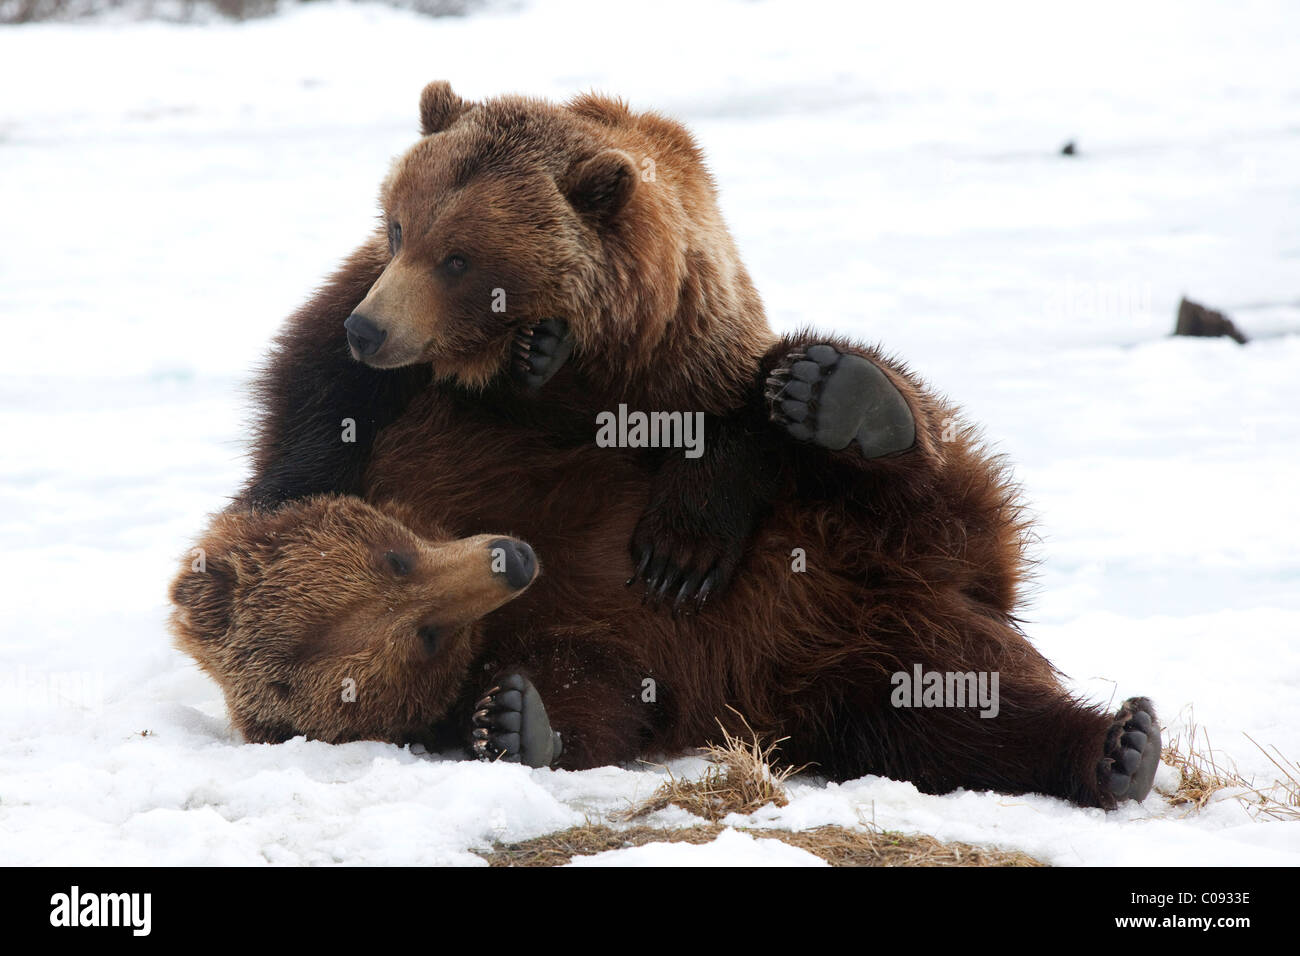 A pair of adult Brown bears wrestle playfully in snow at the Alaska Wildlife Conservation Center near Portage, CAPTIVE - Stock Image